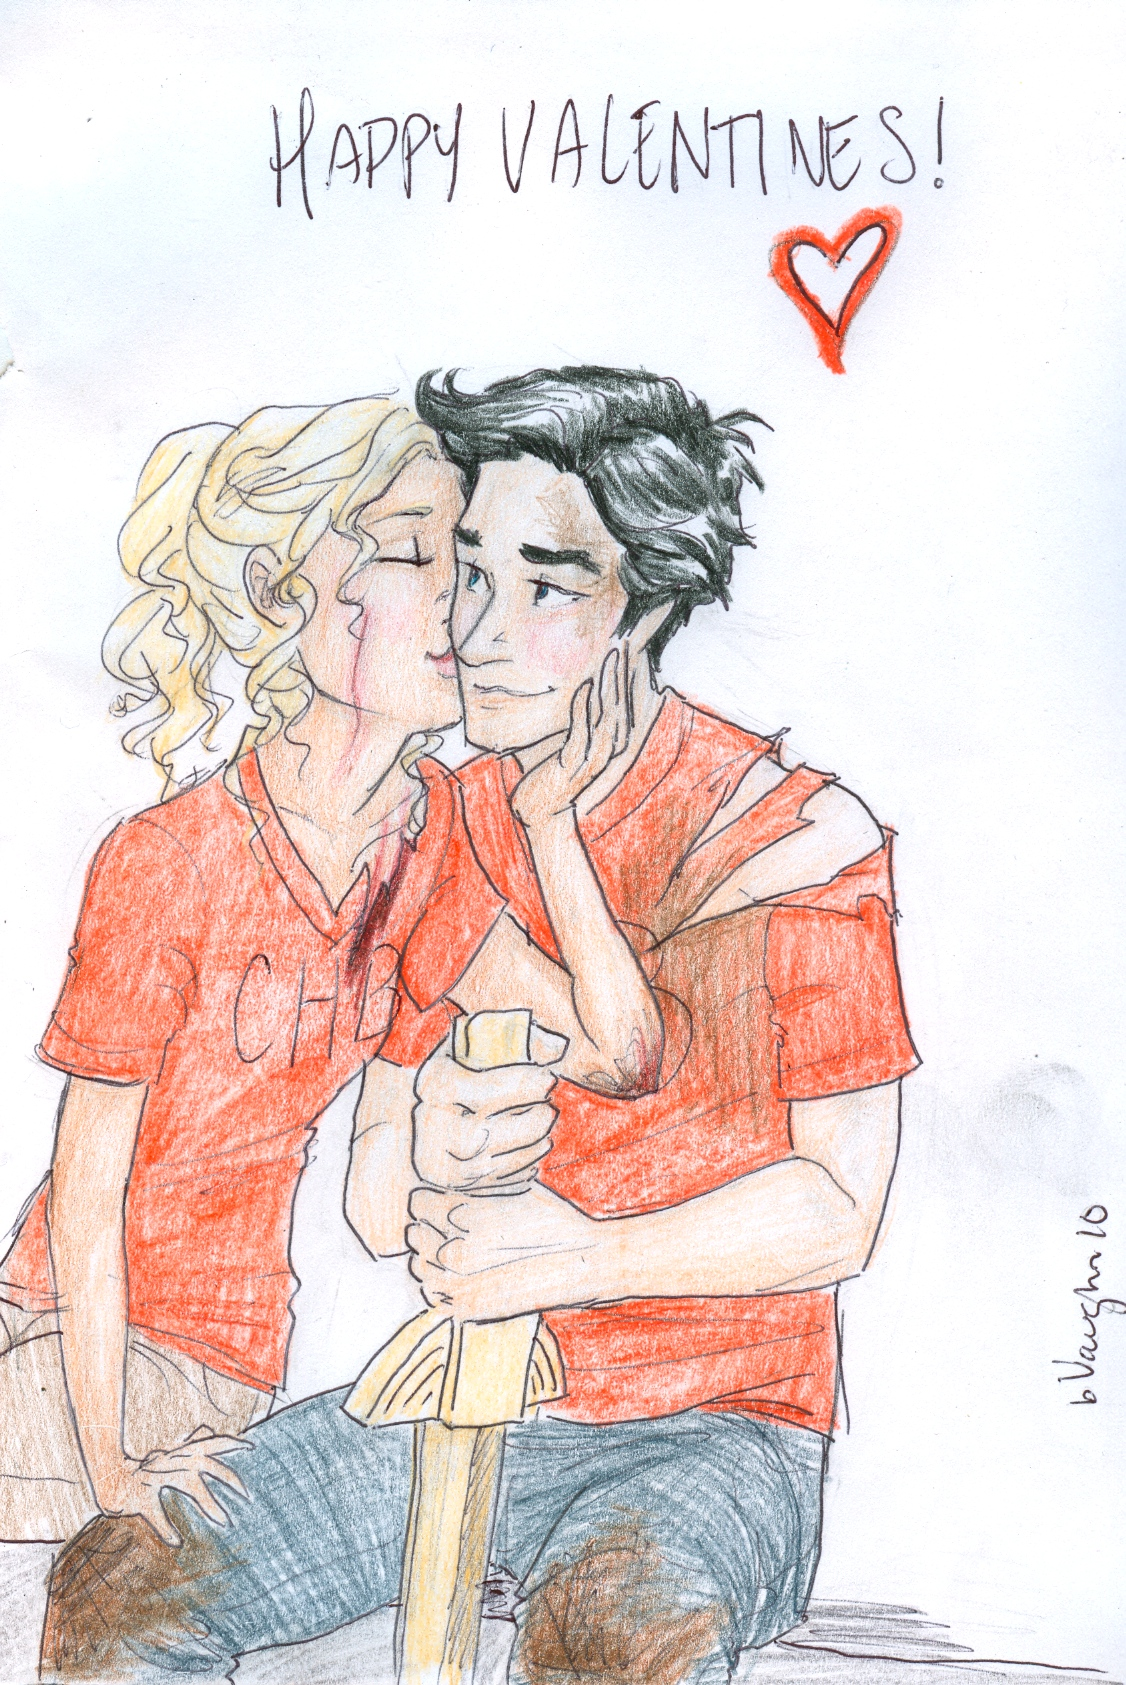 Percy and Annabeth http://camphalfblood.wikia.com/wiki/File:!day_with_Percy_and_Annabeth_by_burdge_bug.jpg